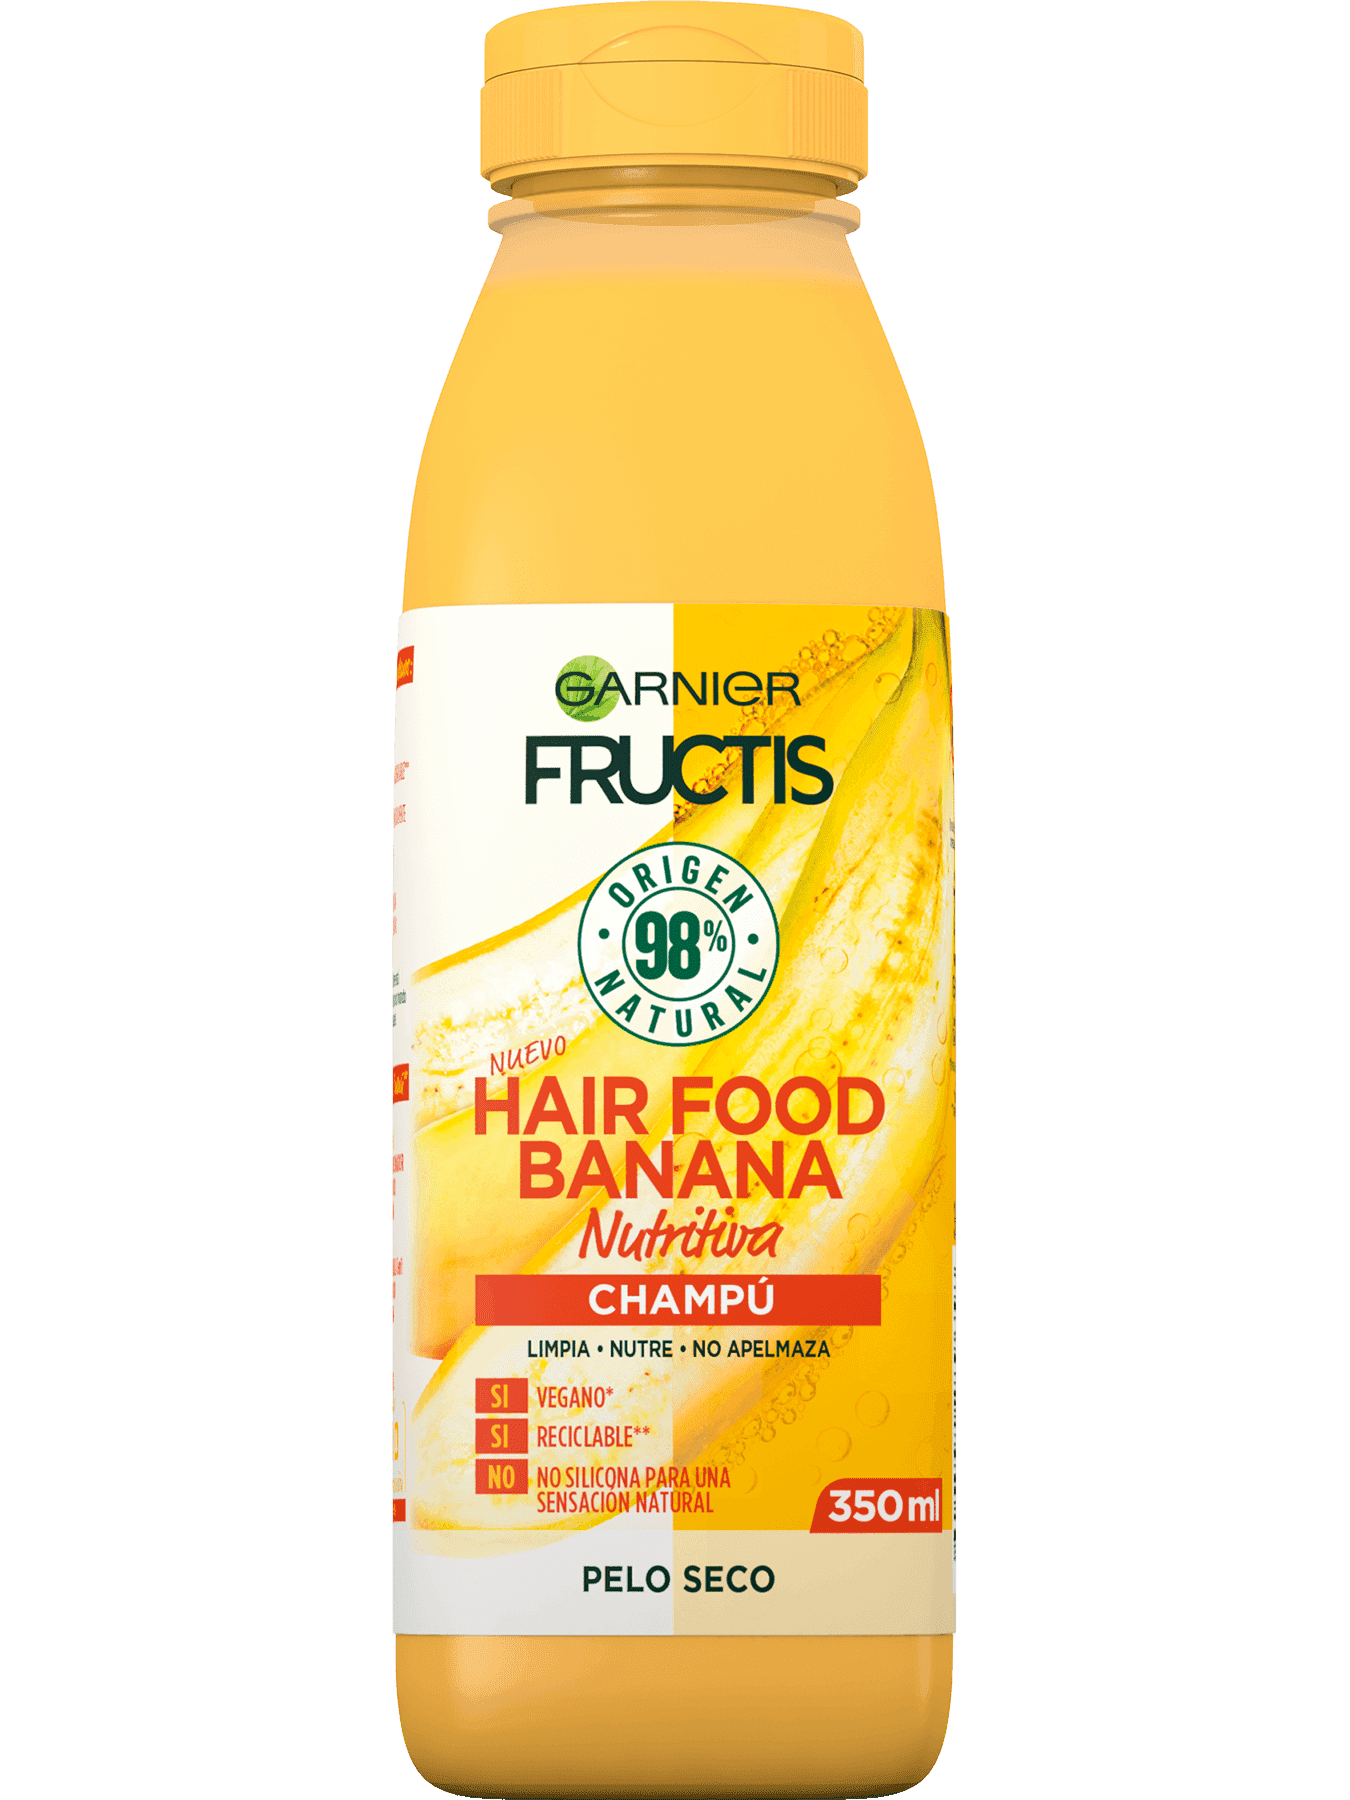 Champú Hair Foor Banana